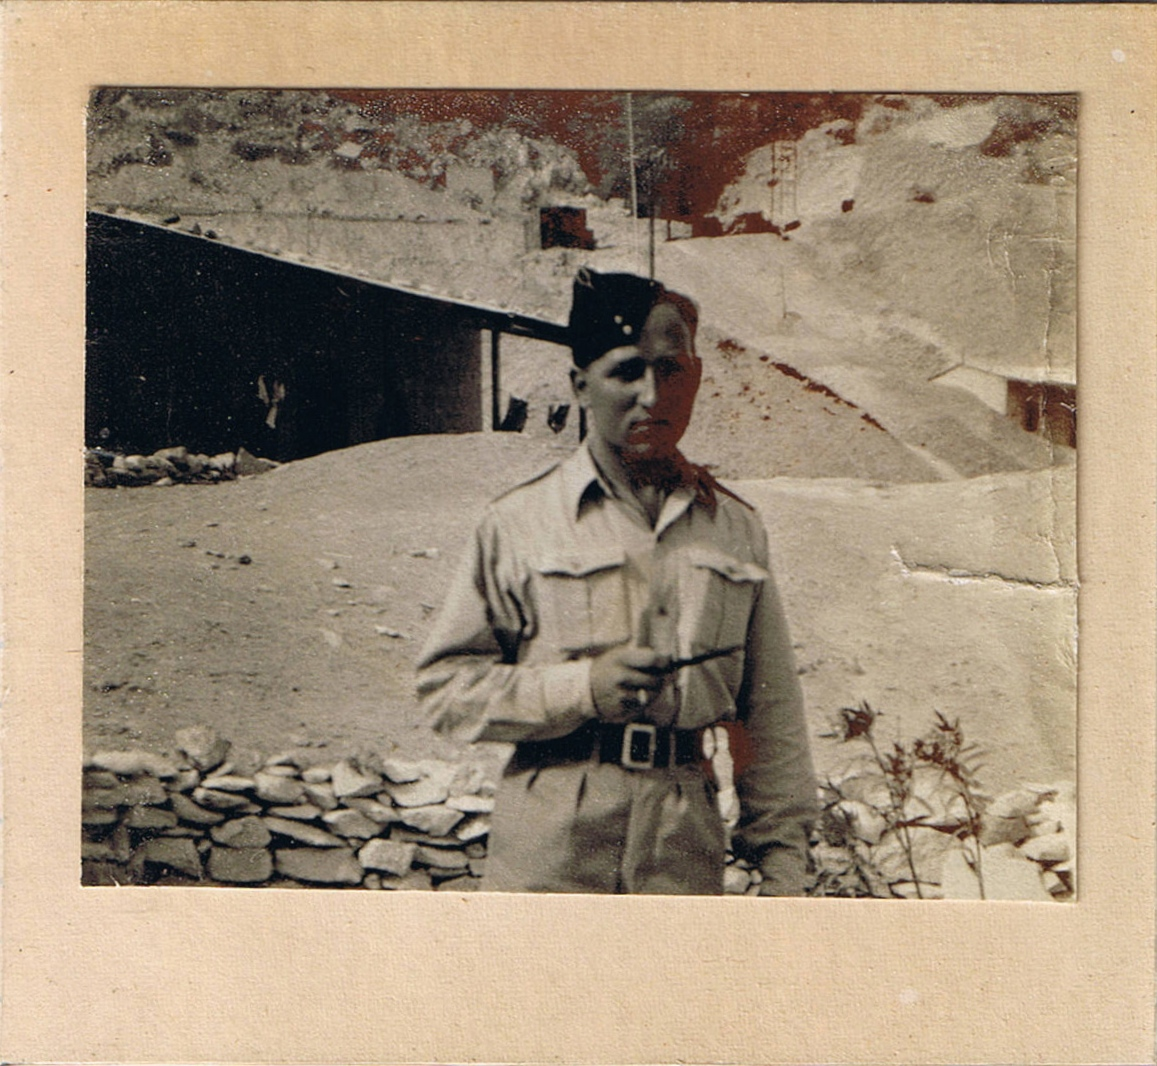 As a Sapper in the 8th Army